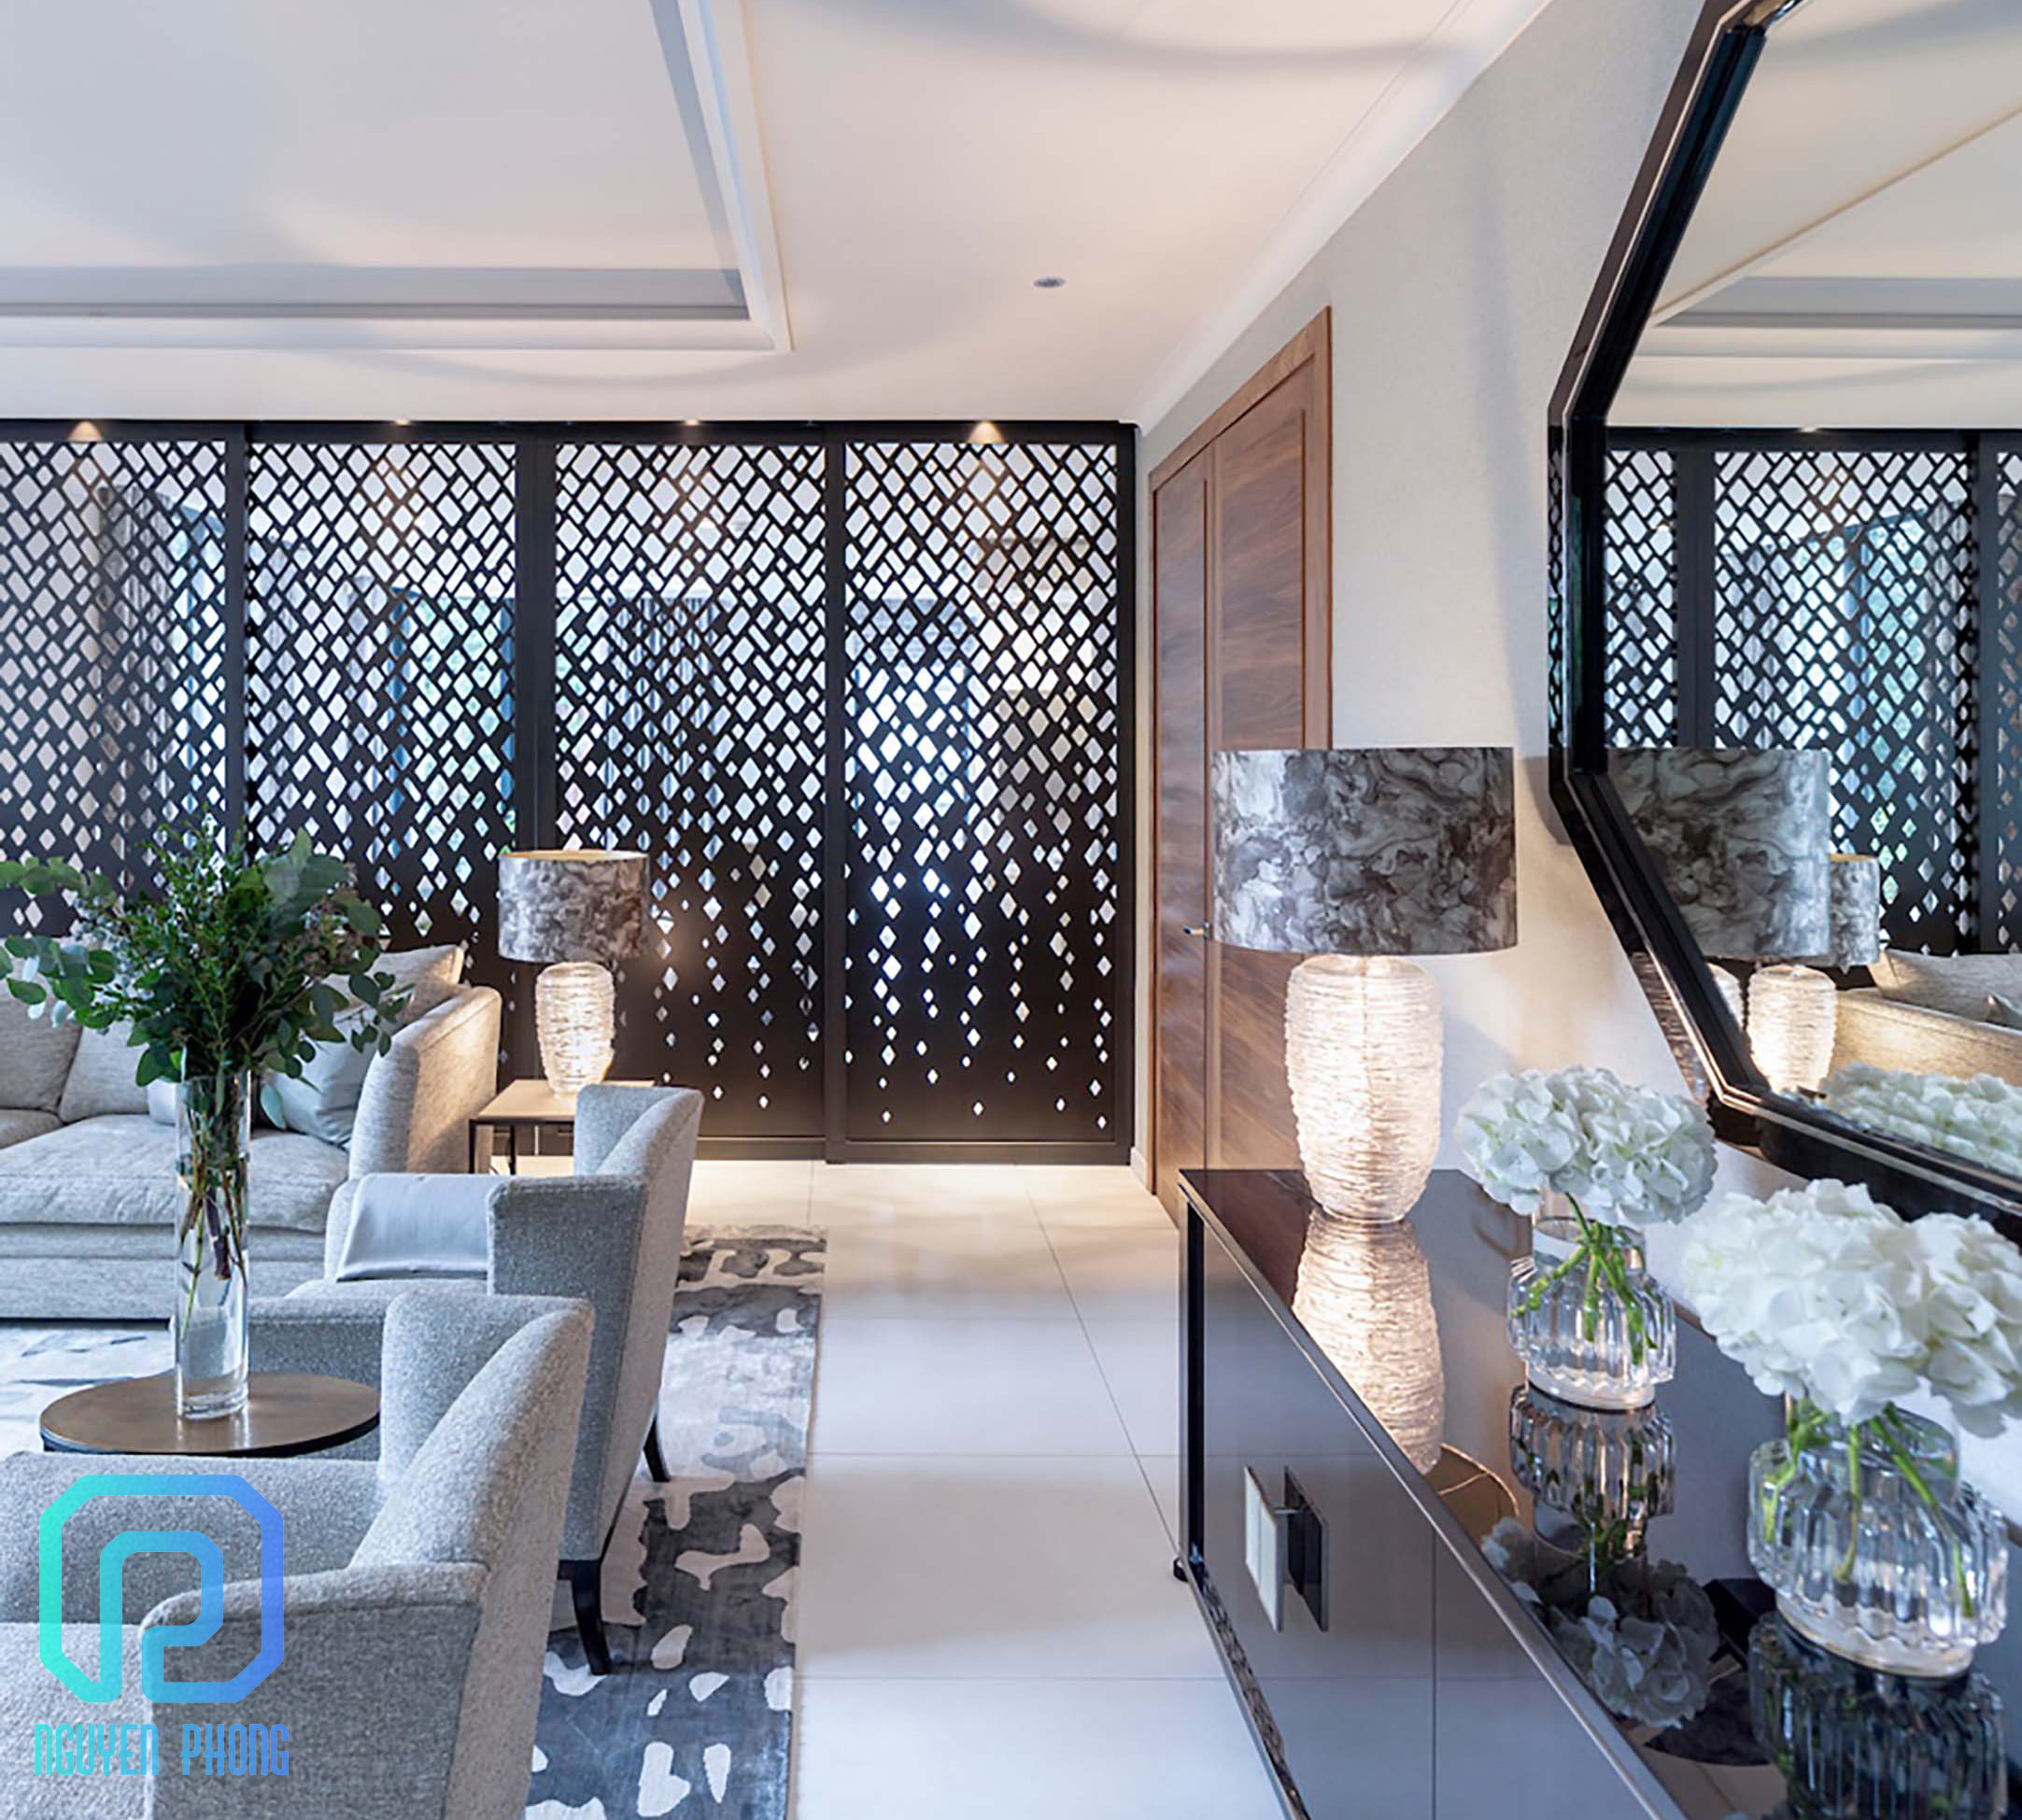 private-client-laser-cut-sliding-doors-2.jpg